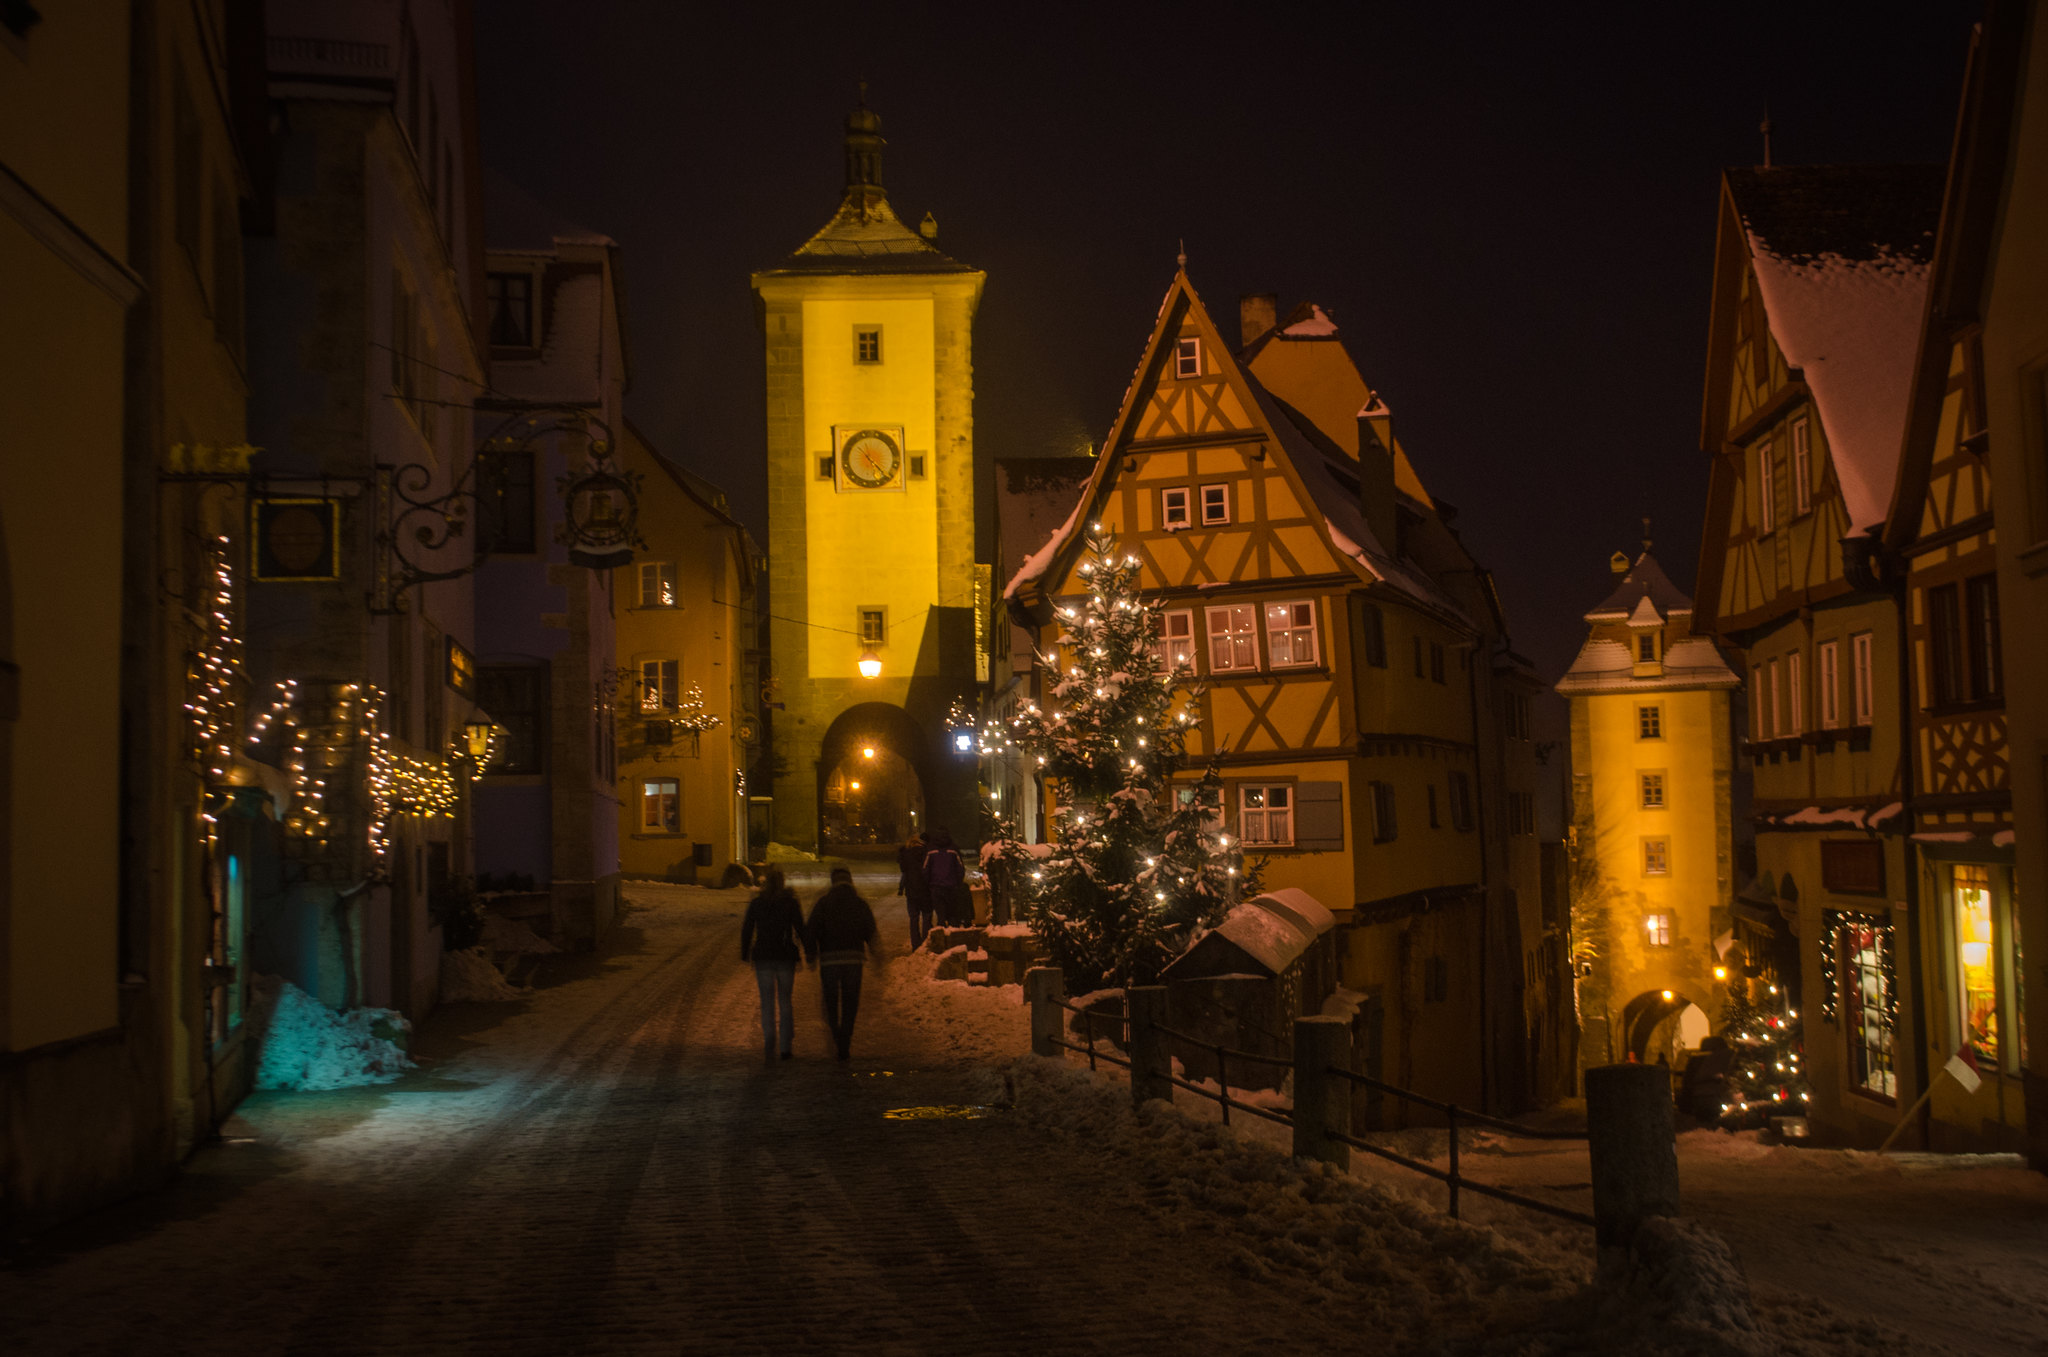 Rothenburg ob der Tauber at night